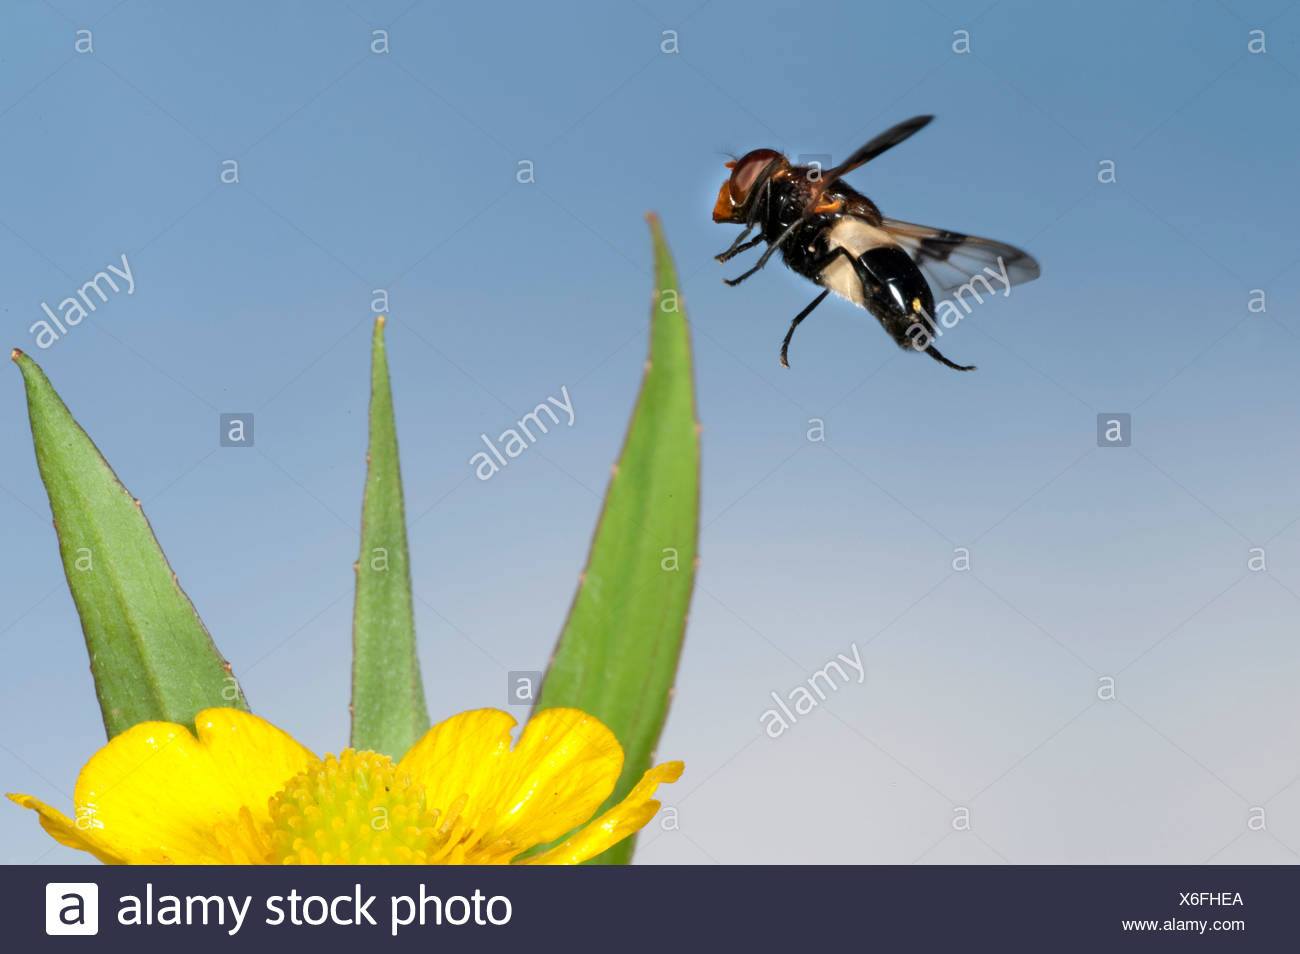 Hoverfly Volucella pellucens In flight free flying High Speed Photographic Technique - Stock Image